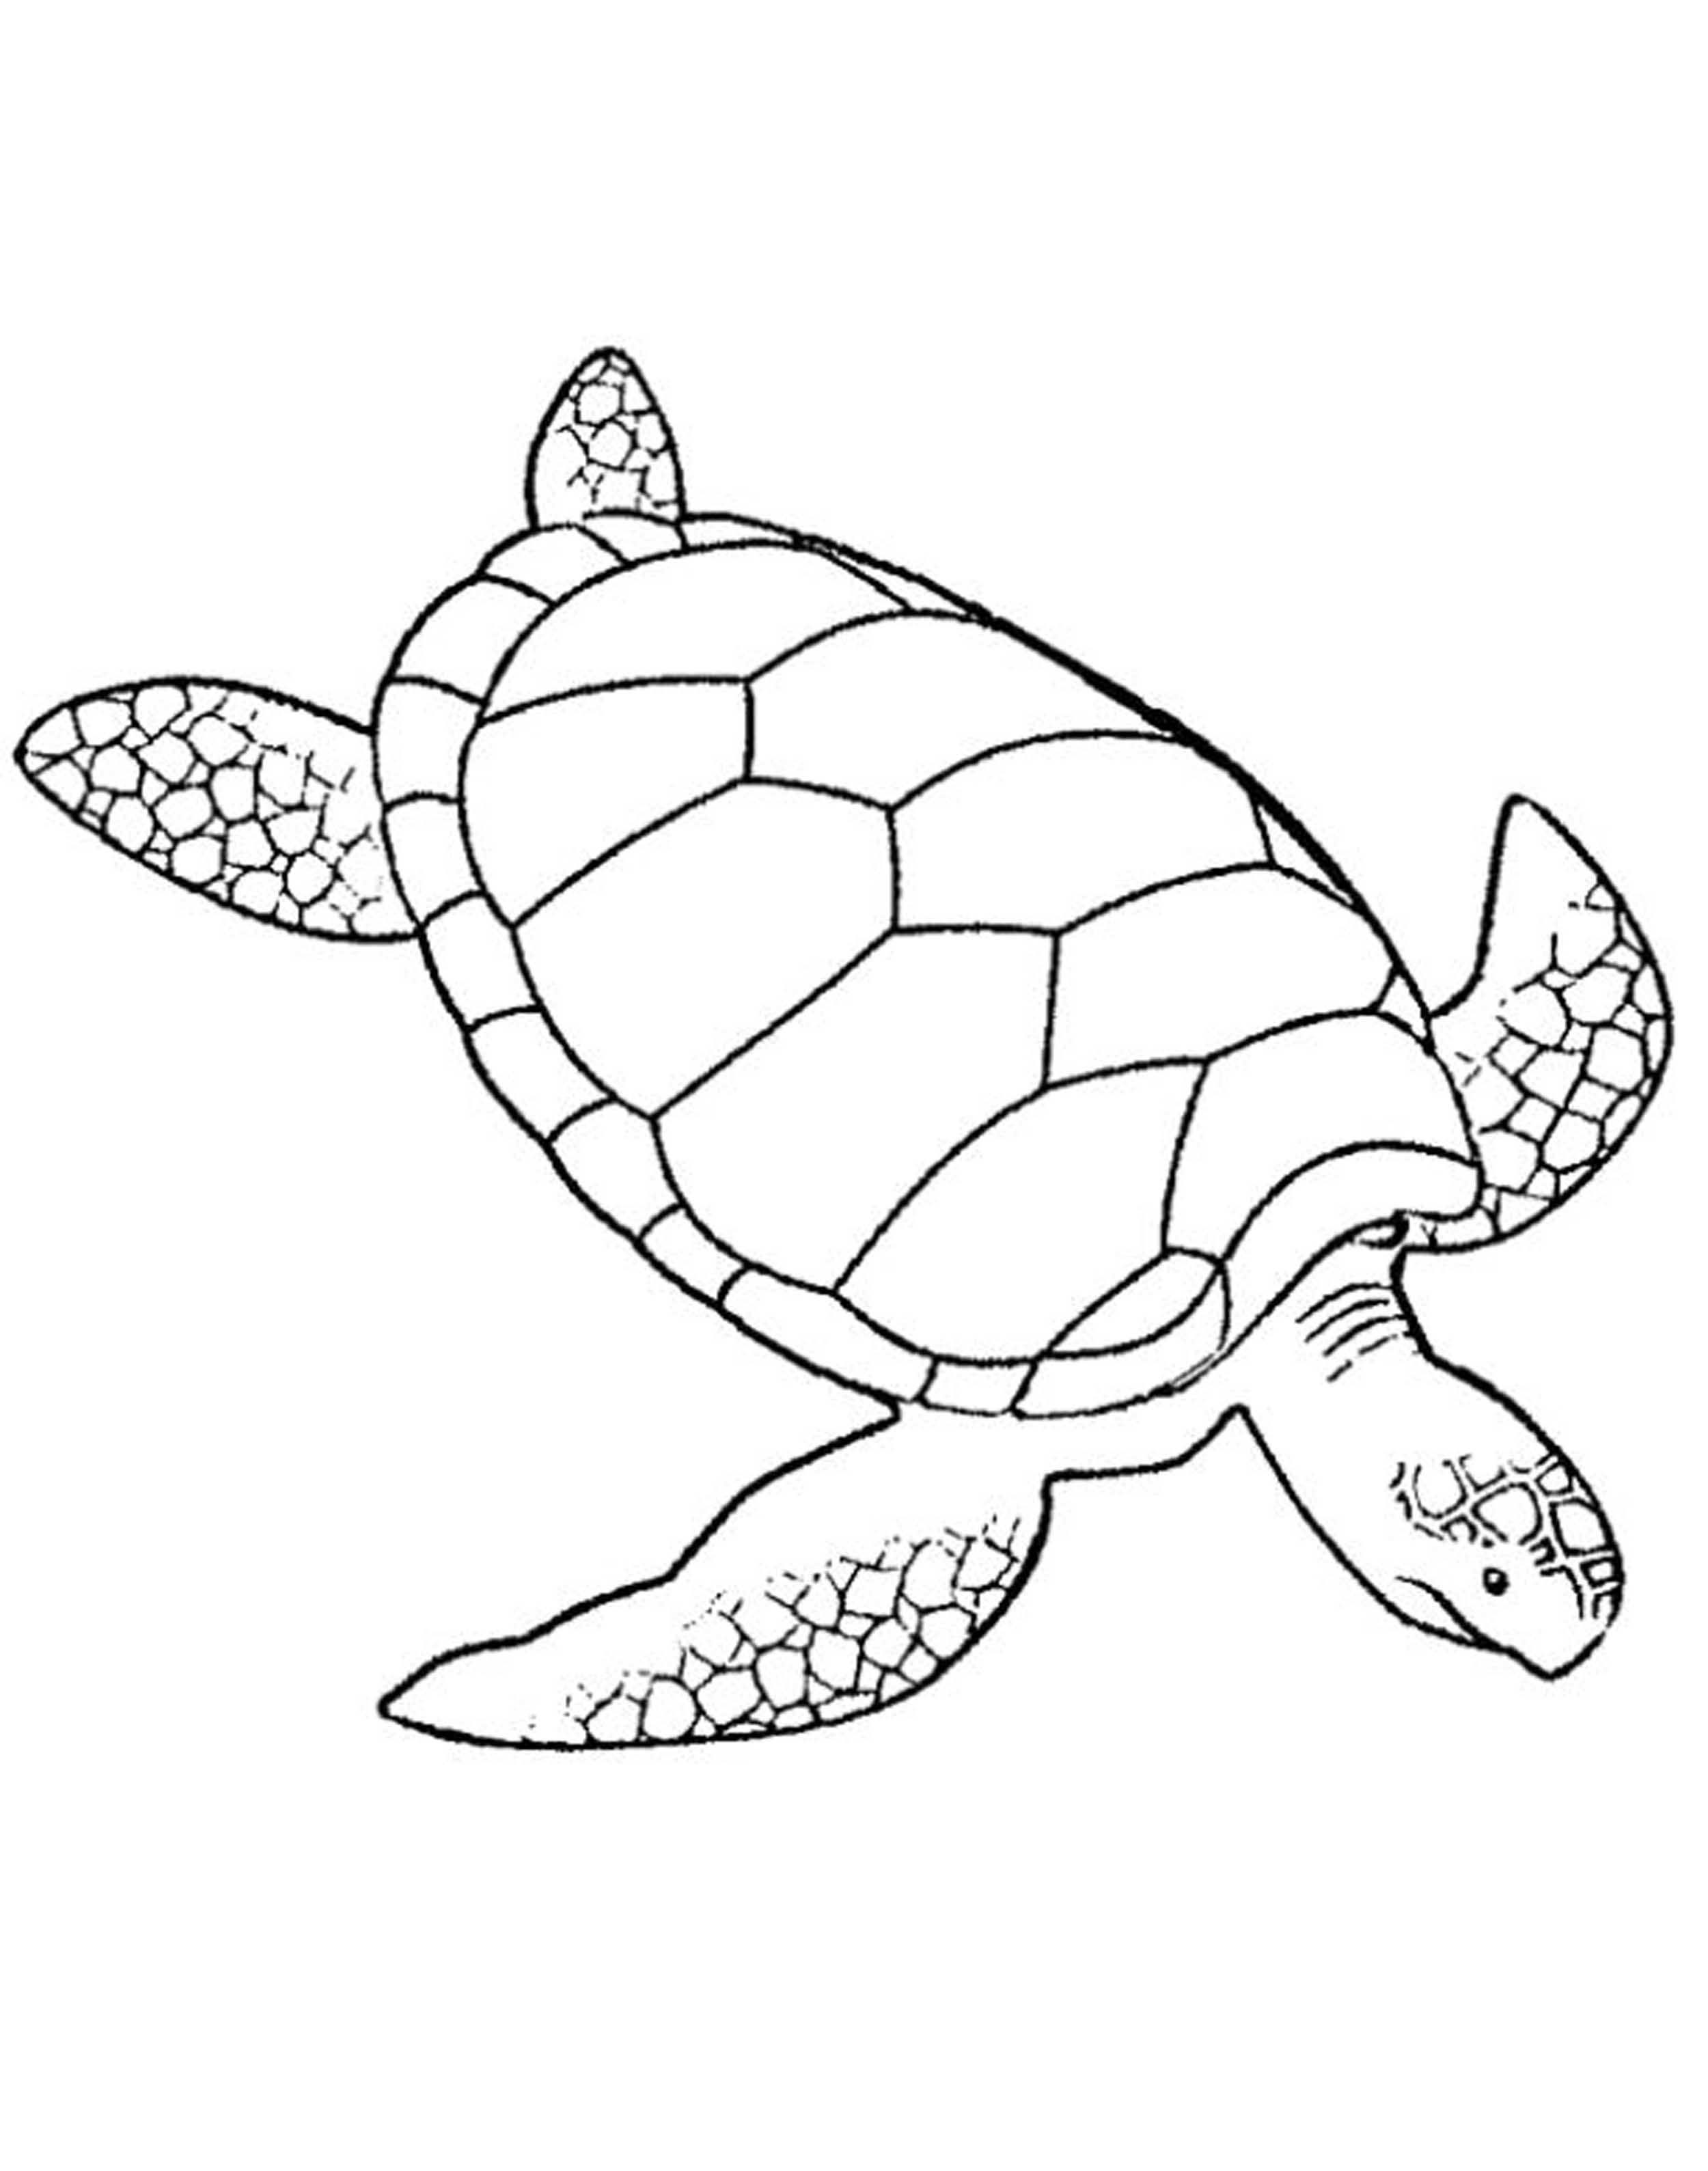 Turtles Coloring Pages For Adults Printable Kids Colouring Pages